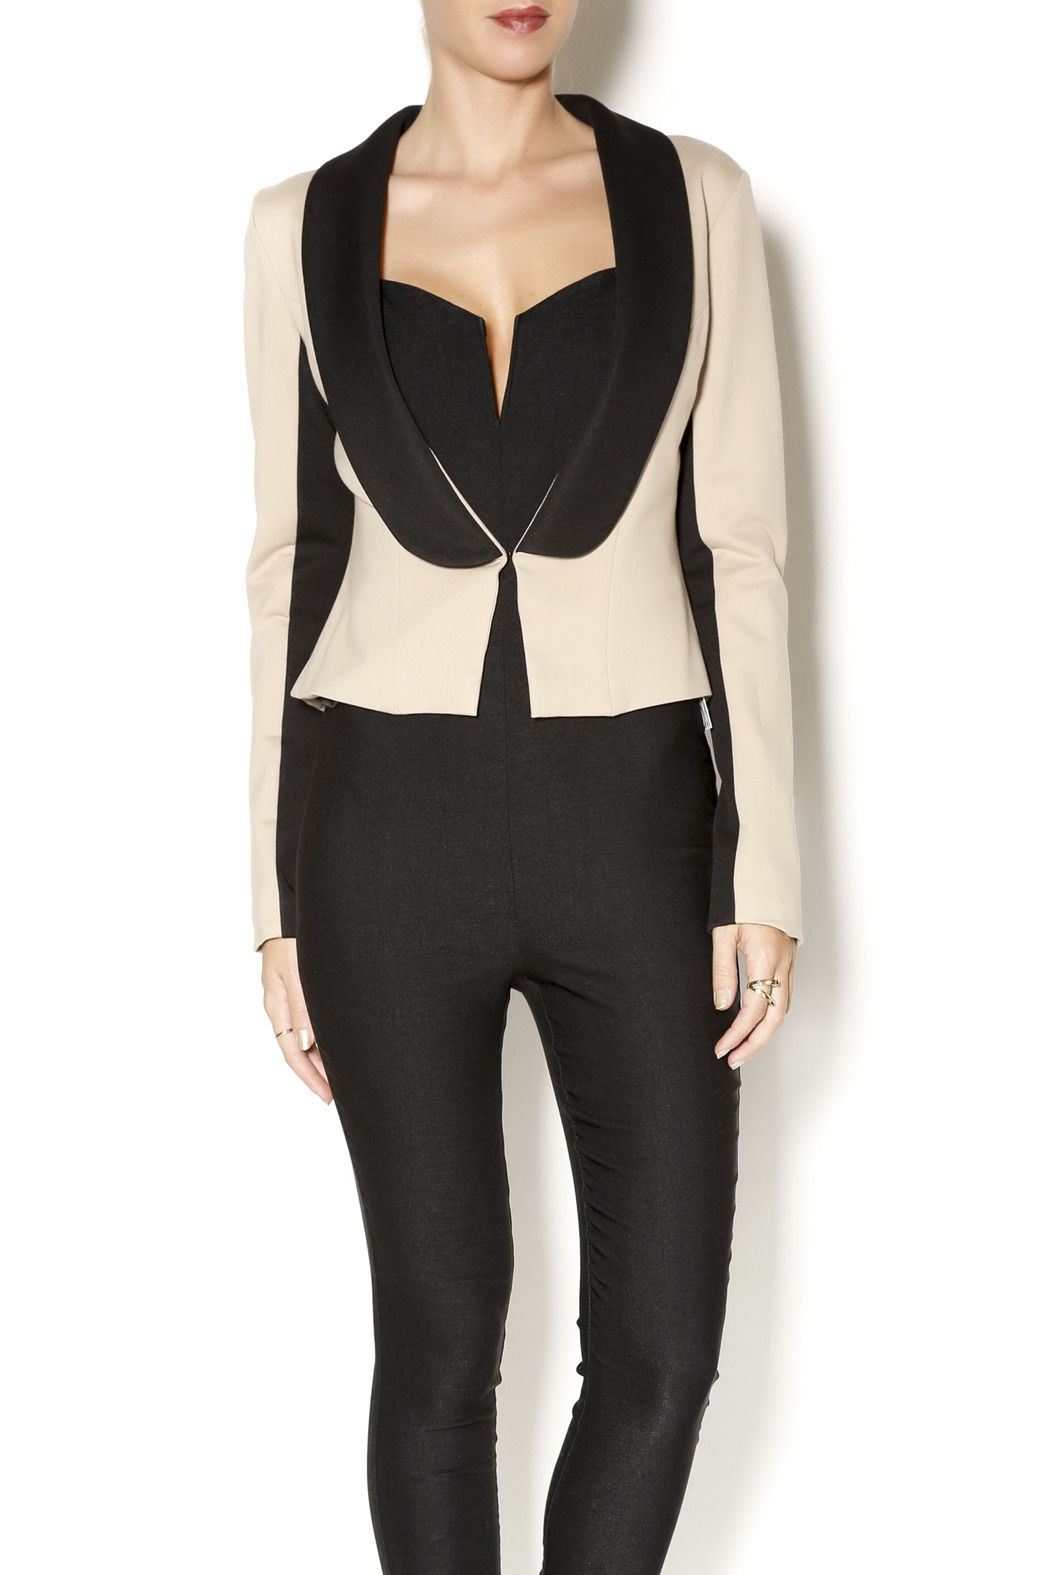 Whitney EVE Whitney Eve Cut-Out Blazer - Main Image